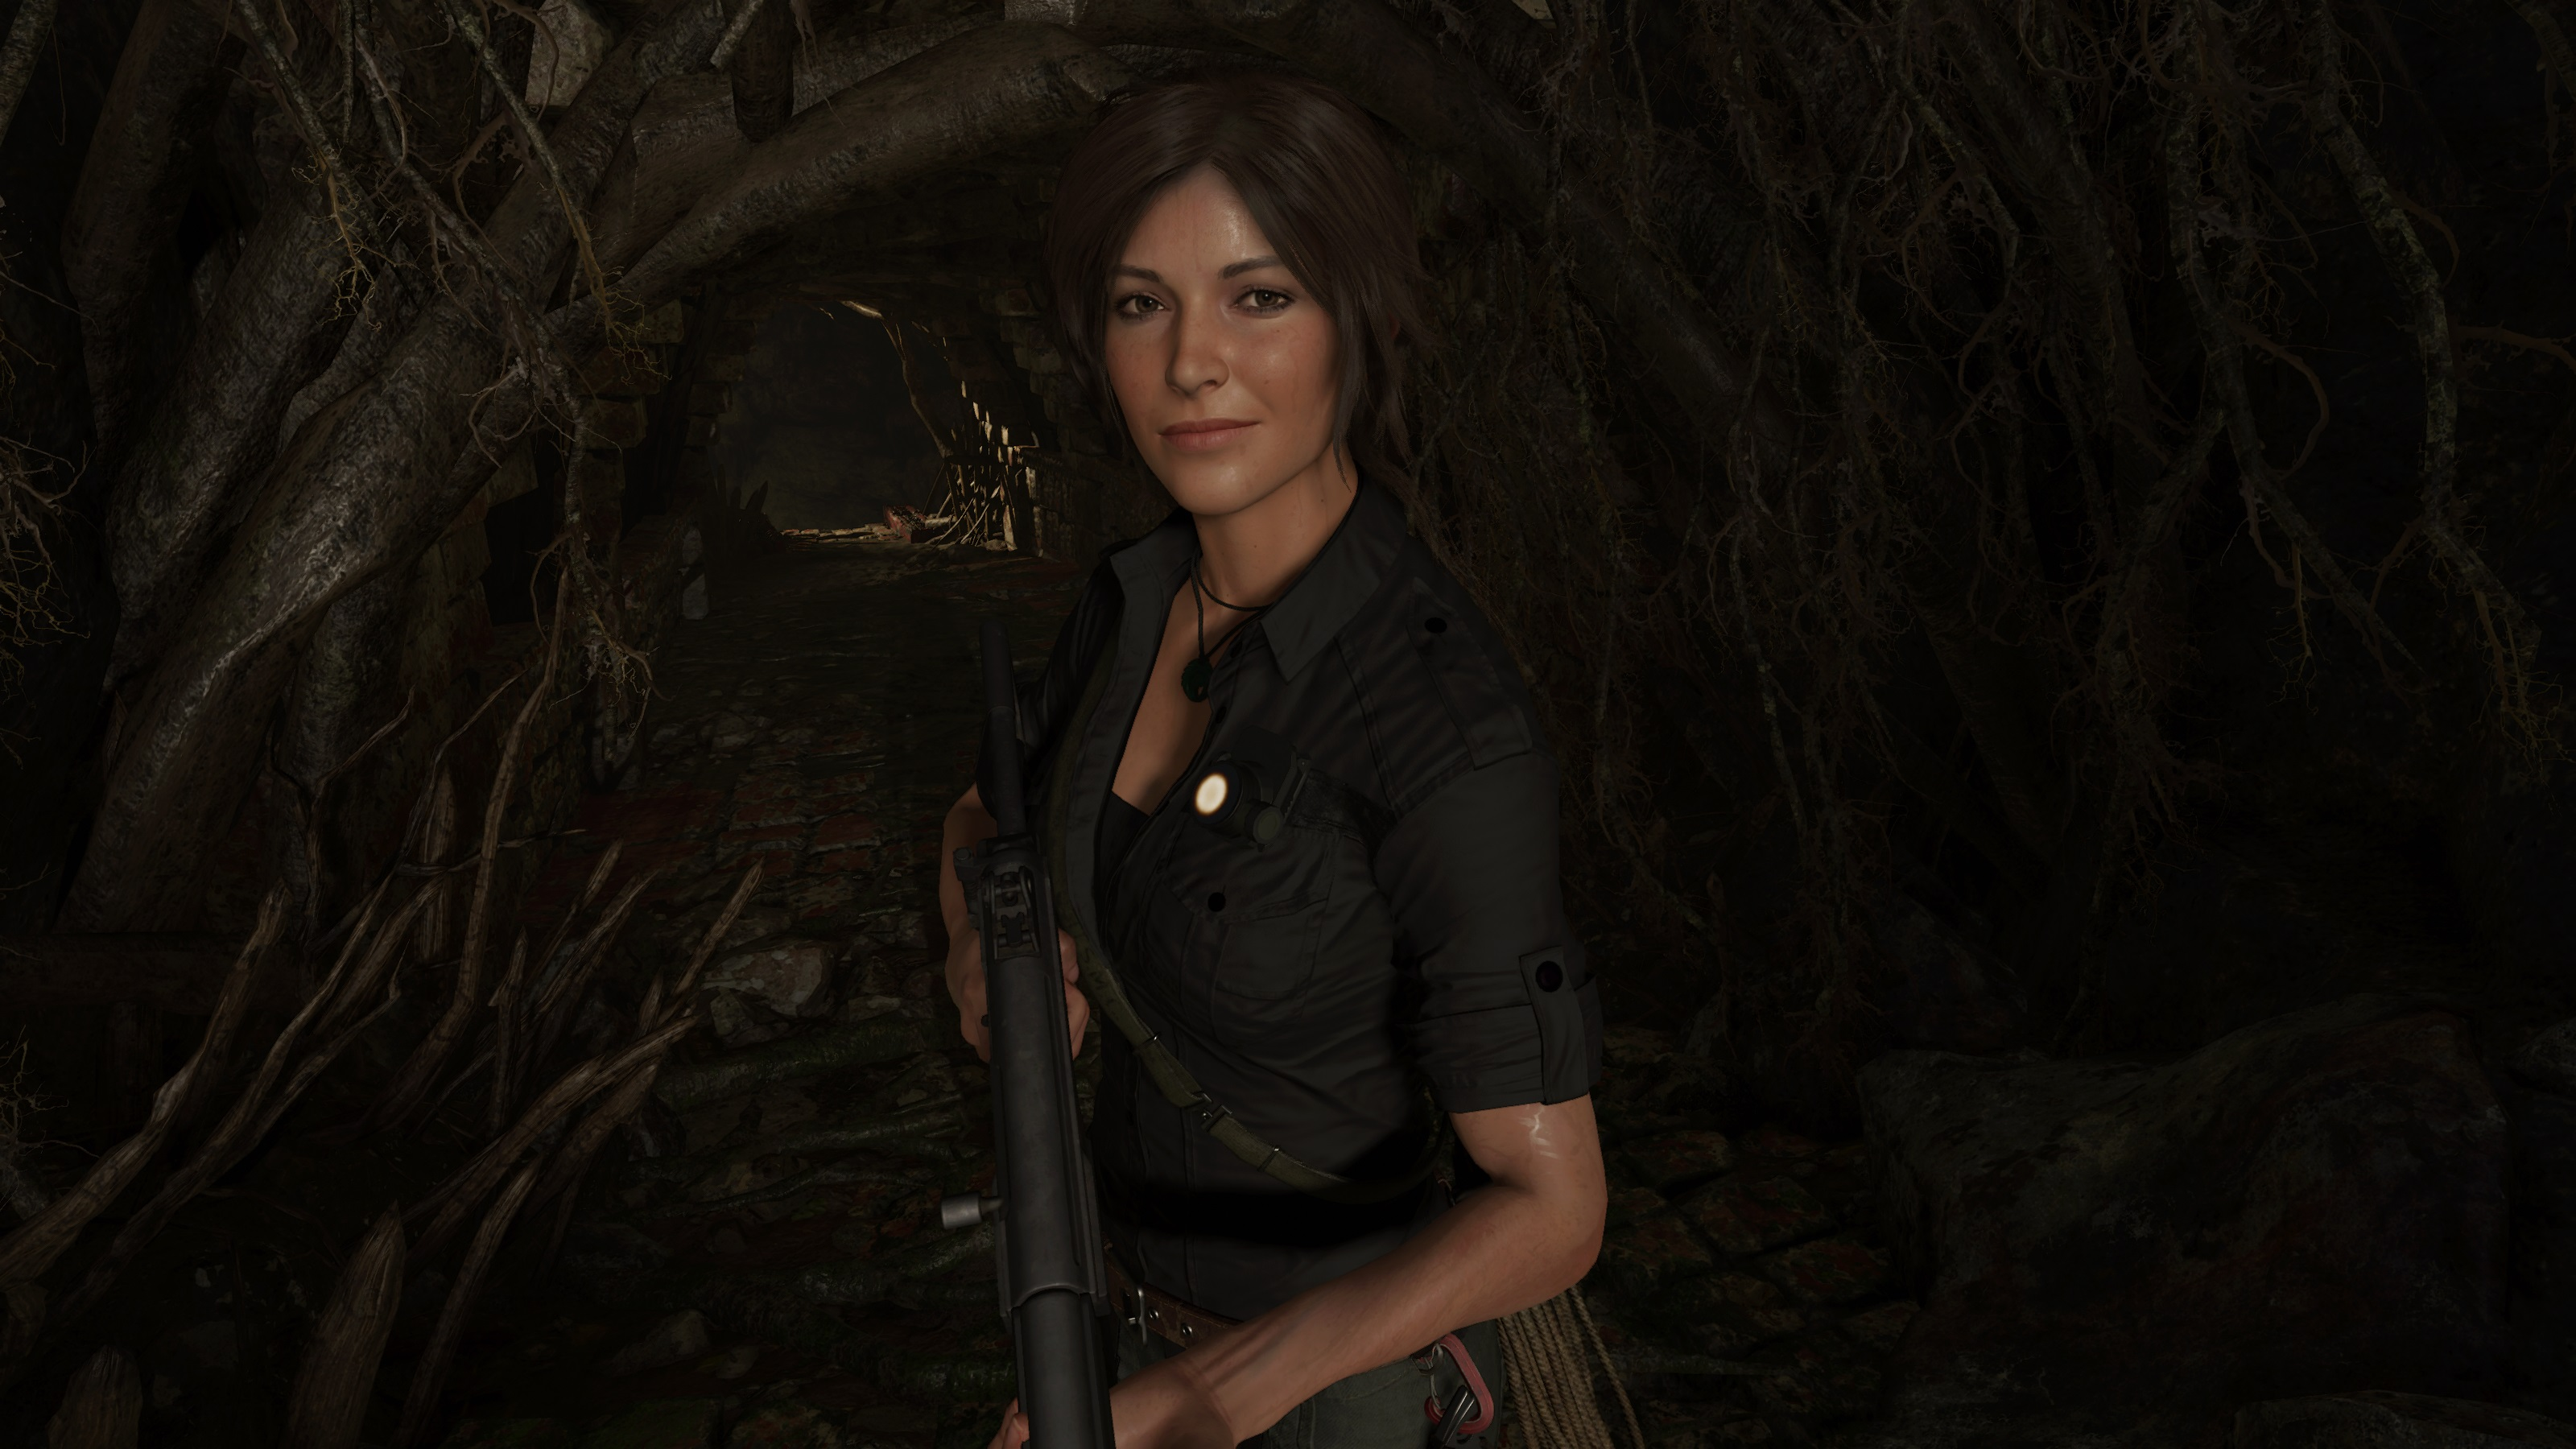 Pc Shadow Of The Tomb Raider Mod Adds One New Adventurer Outfit